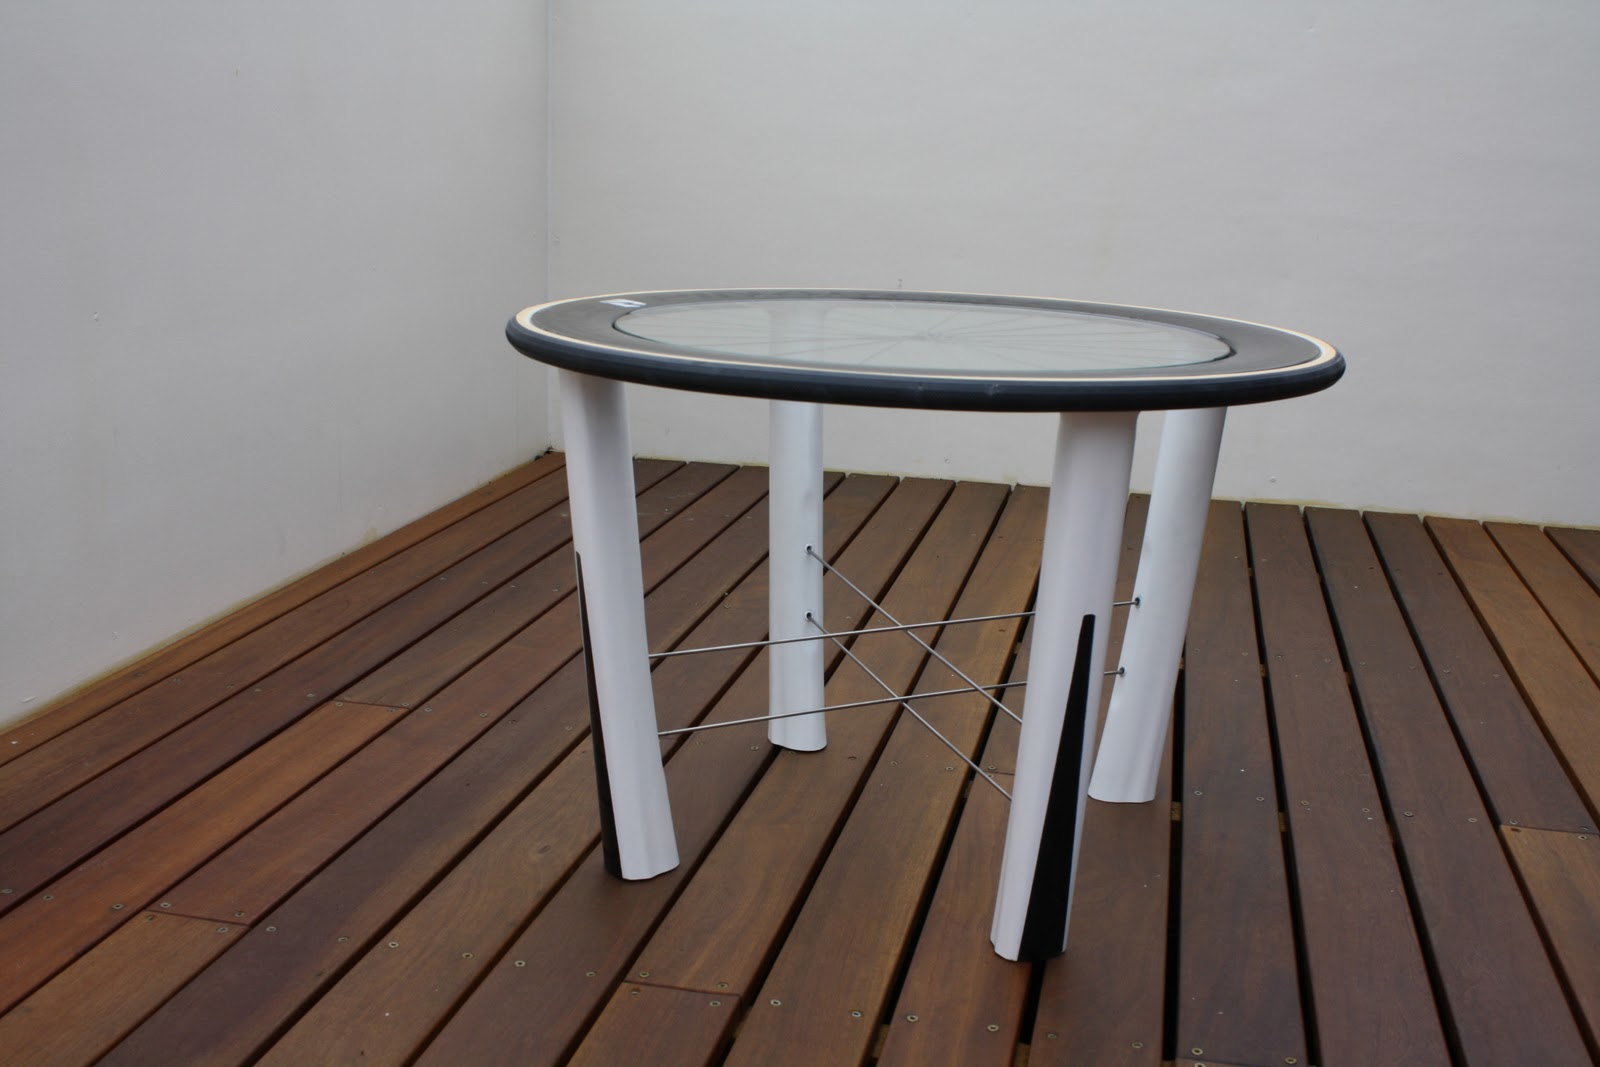 table recycled materials. Deep Dish Carbon Wheel Coffee Table 805. Recycled Materials: Materials C